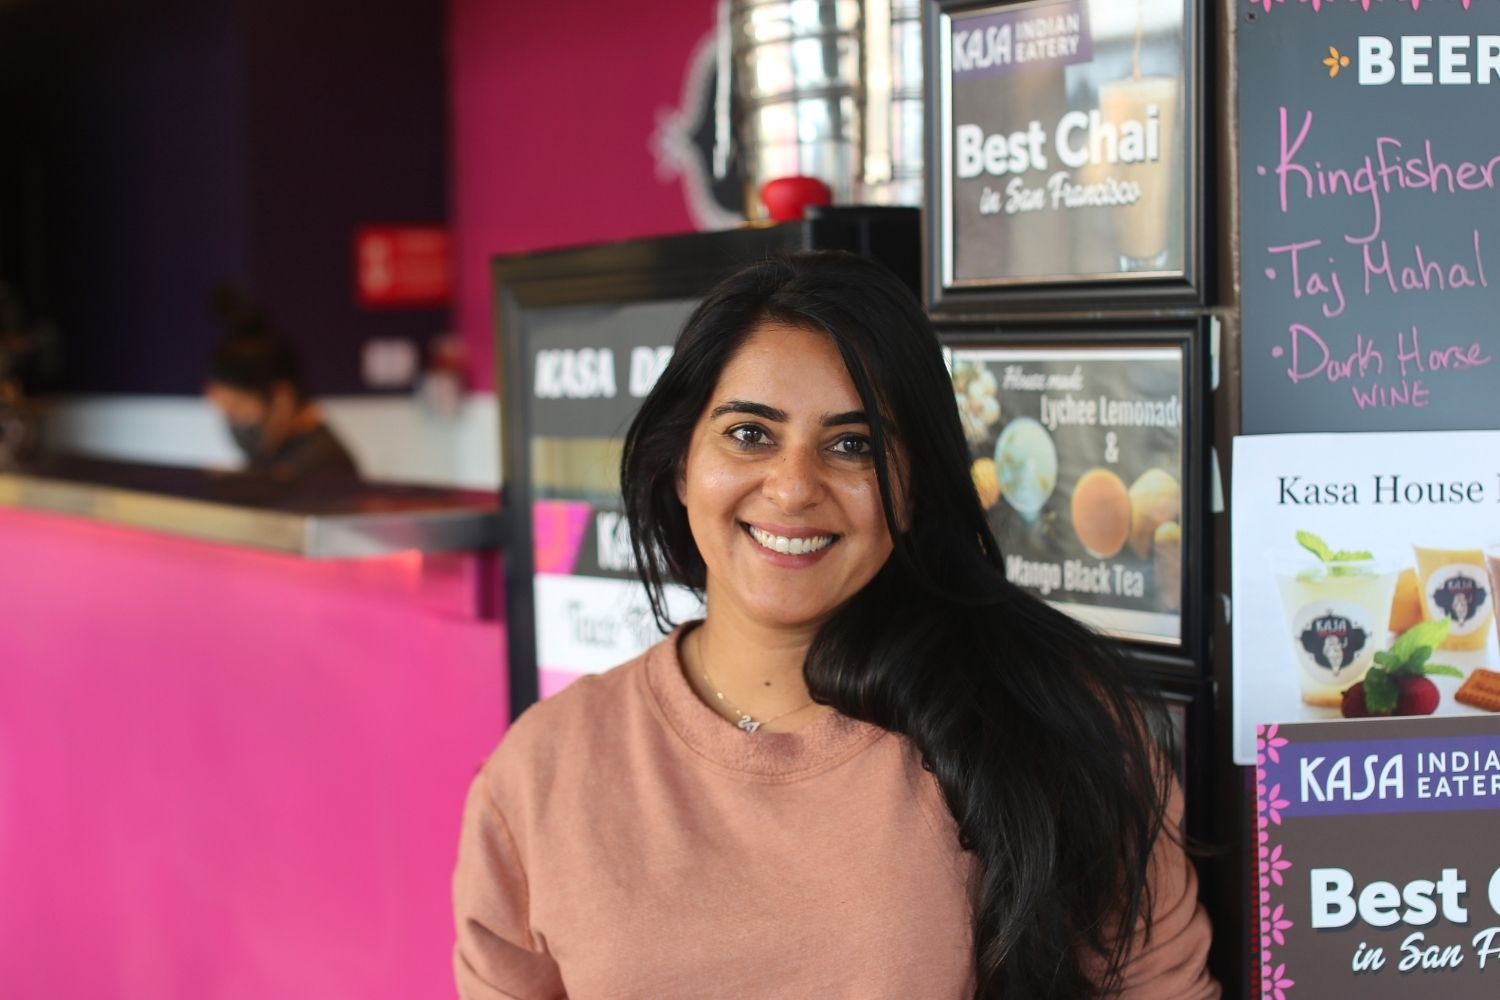 Anamika Khanna owner and chef of Kasa Indian Eatery